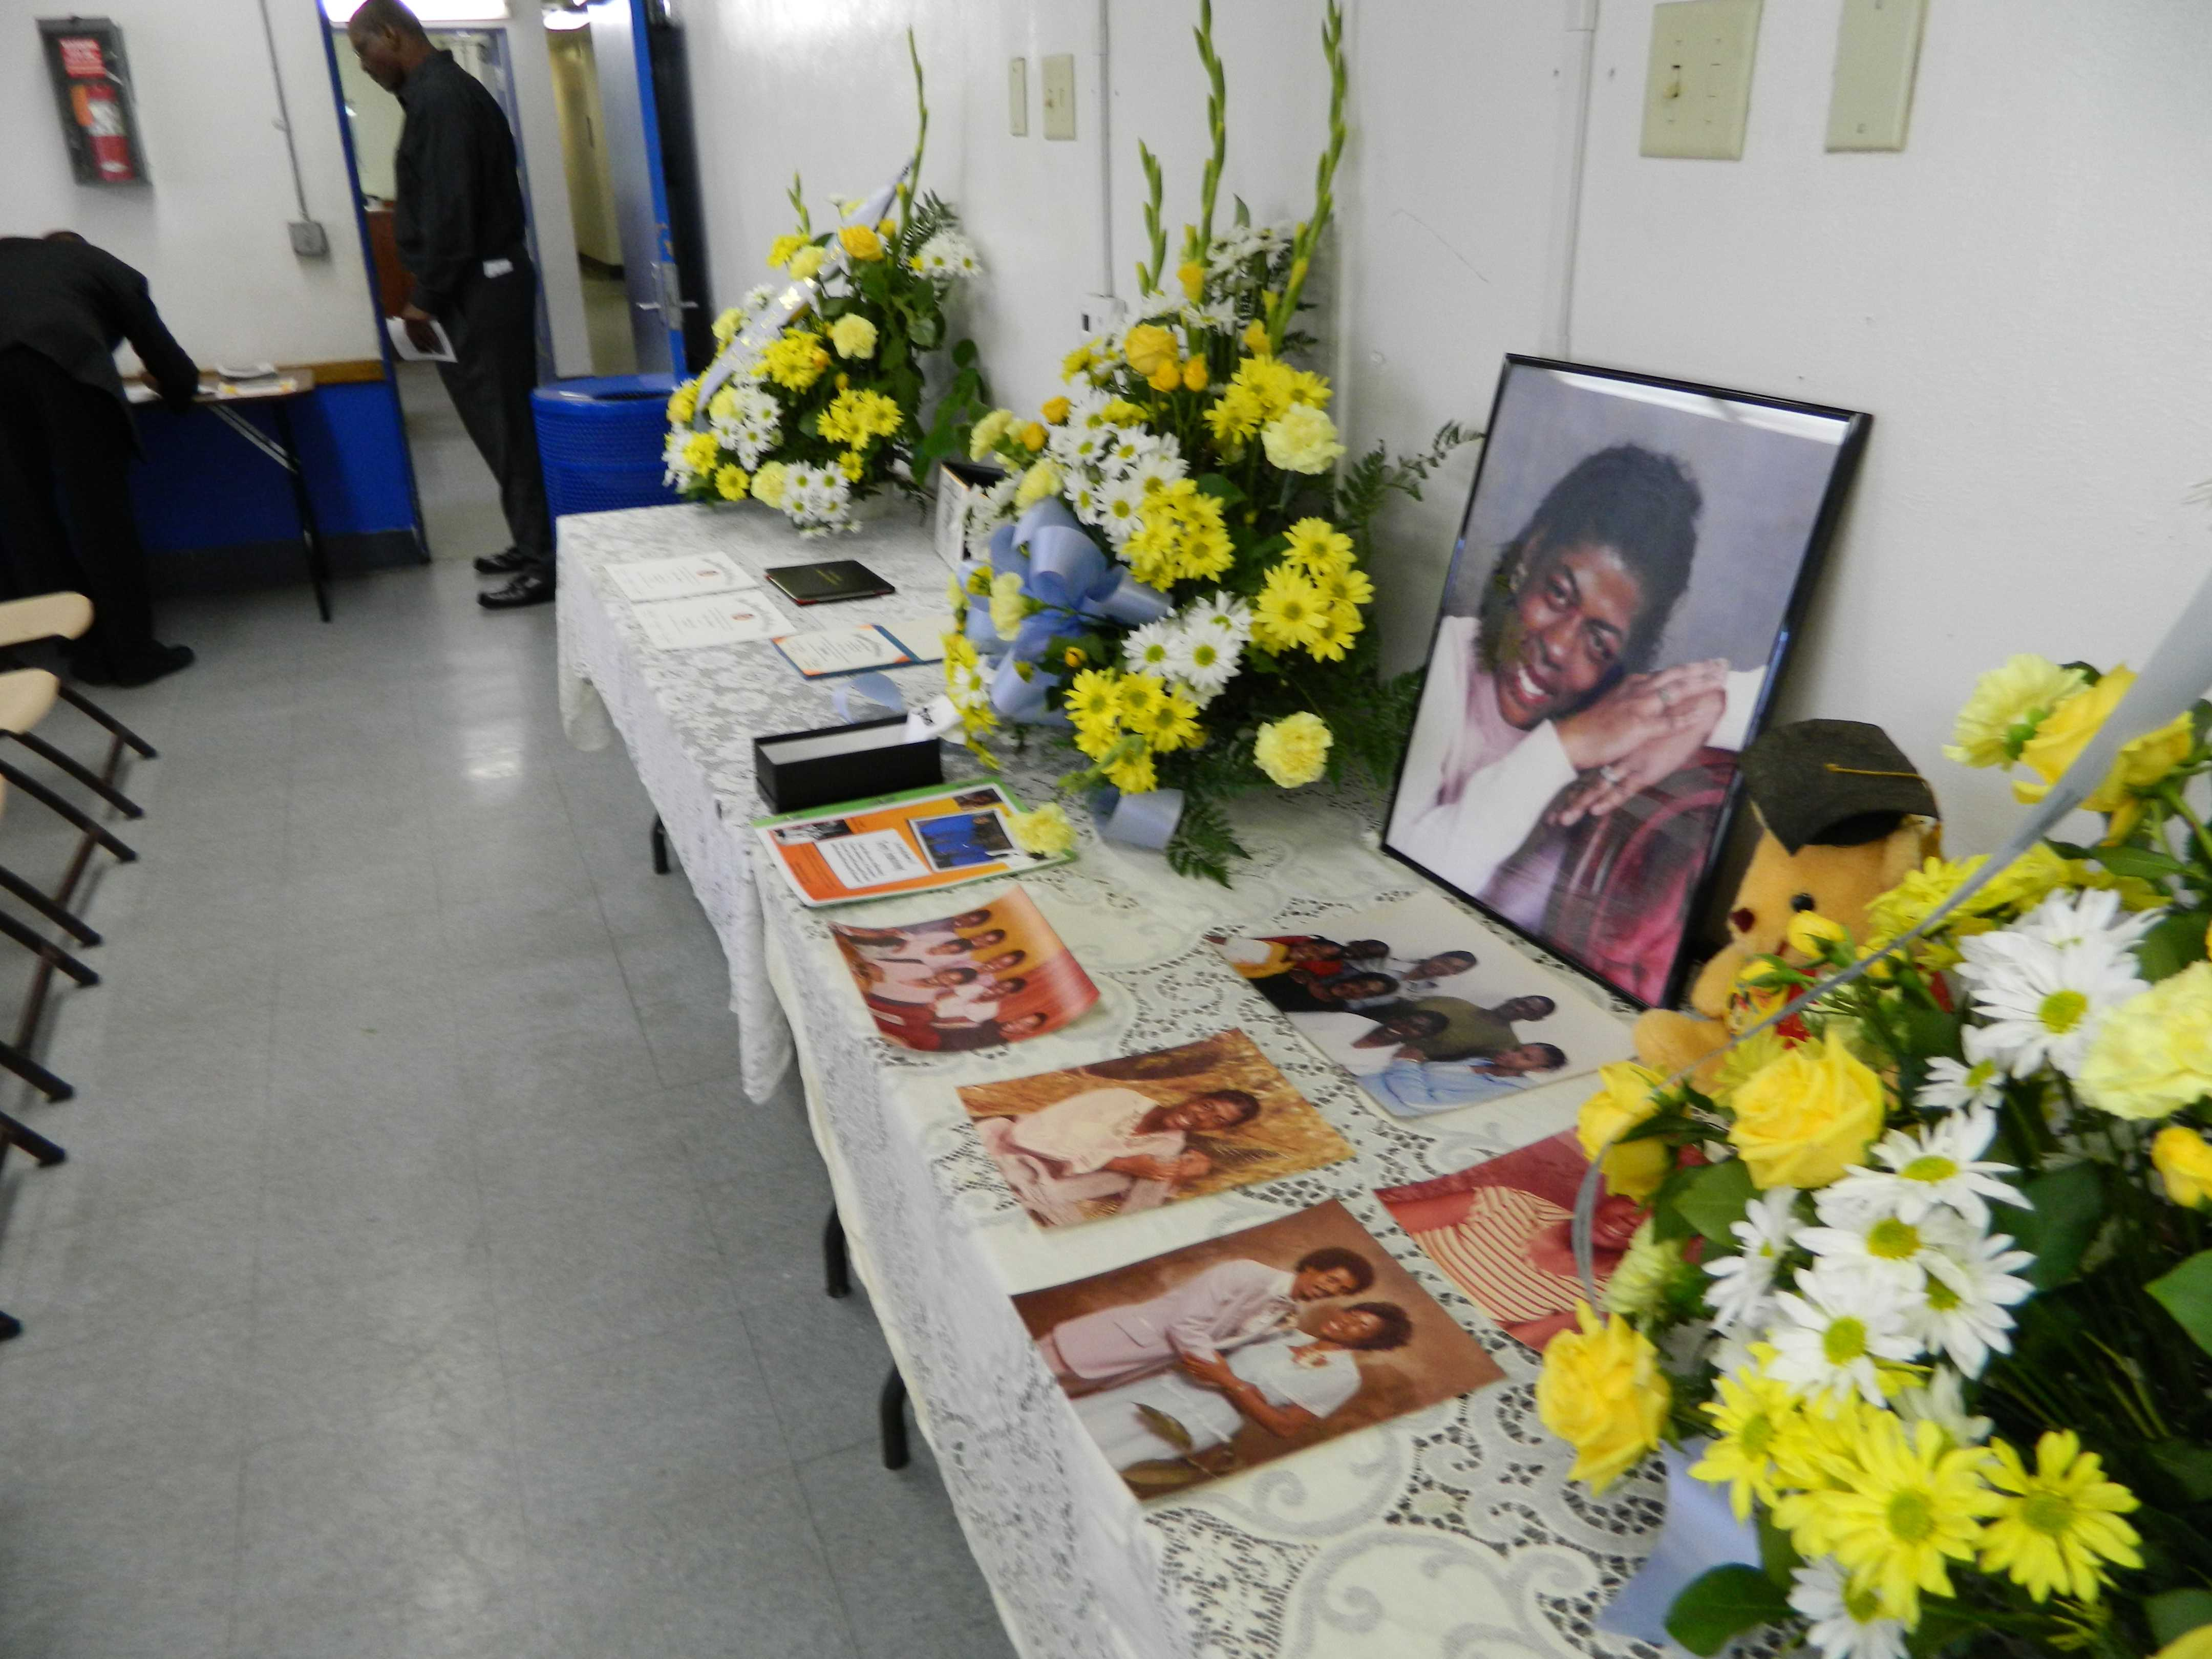 A memorial service Feb. 13 celebrated the life of long-time student activist Terry Armstrong, who died of a heart attack at age 52.Photo credit: Christopher Handloser